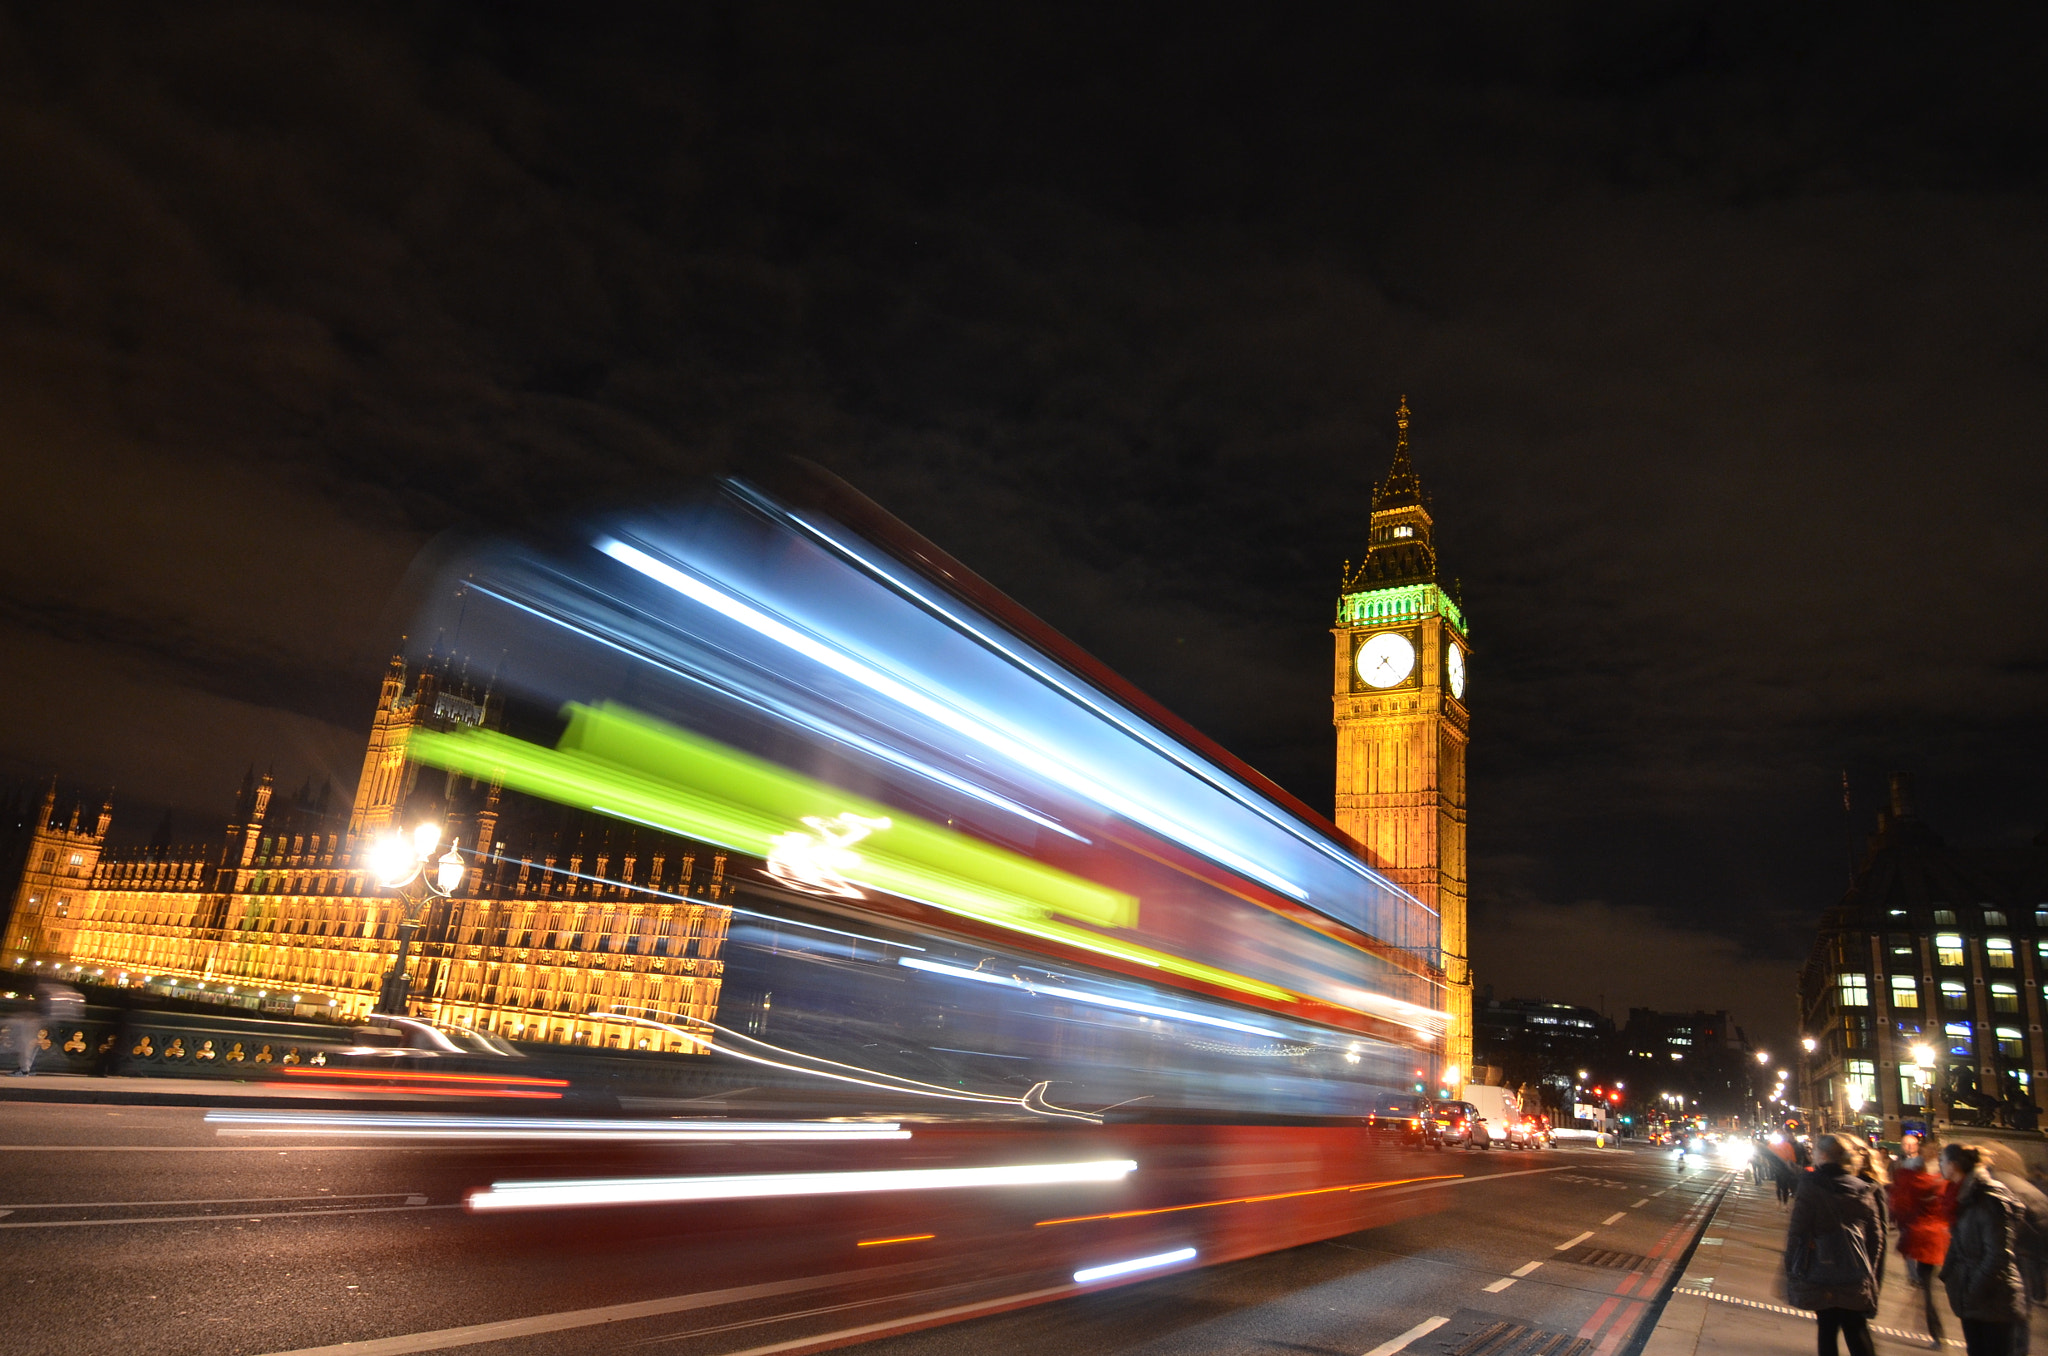 Photograph Big Ben London at night by Martyn Addison-Smith on 500px